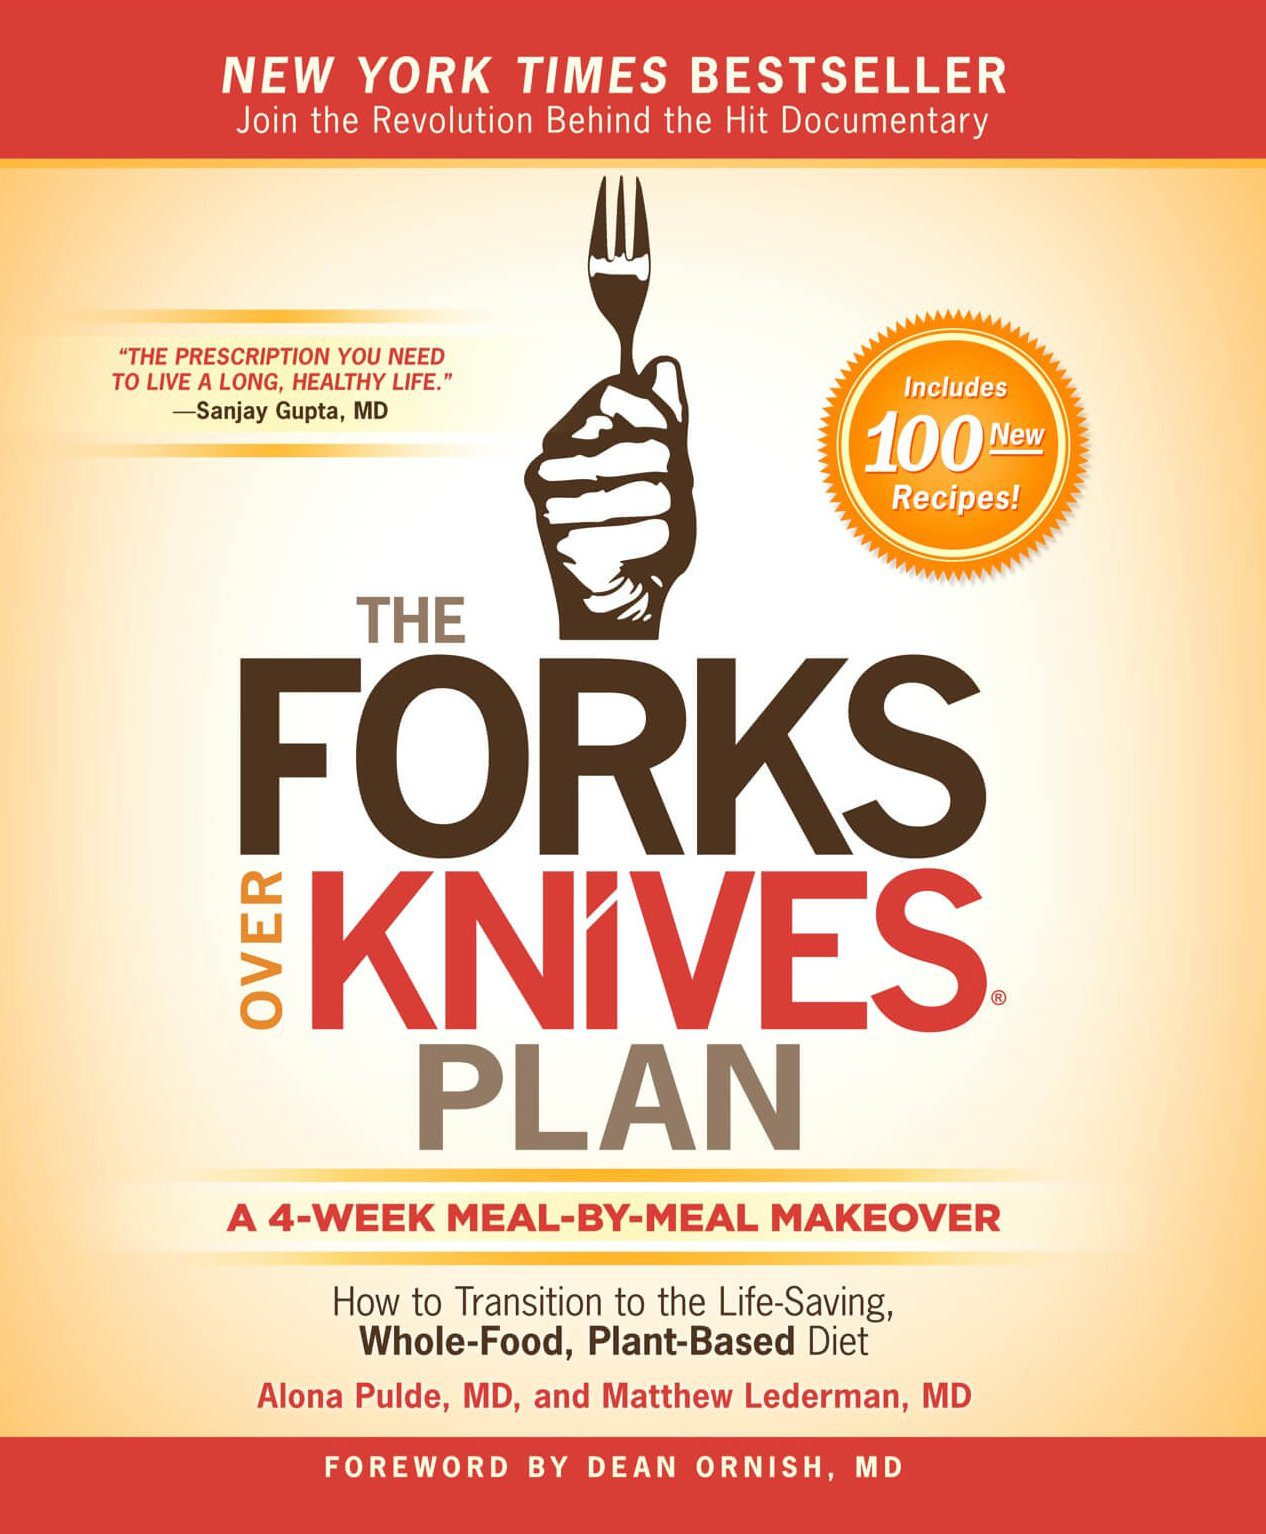 forks over knives book review